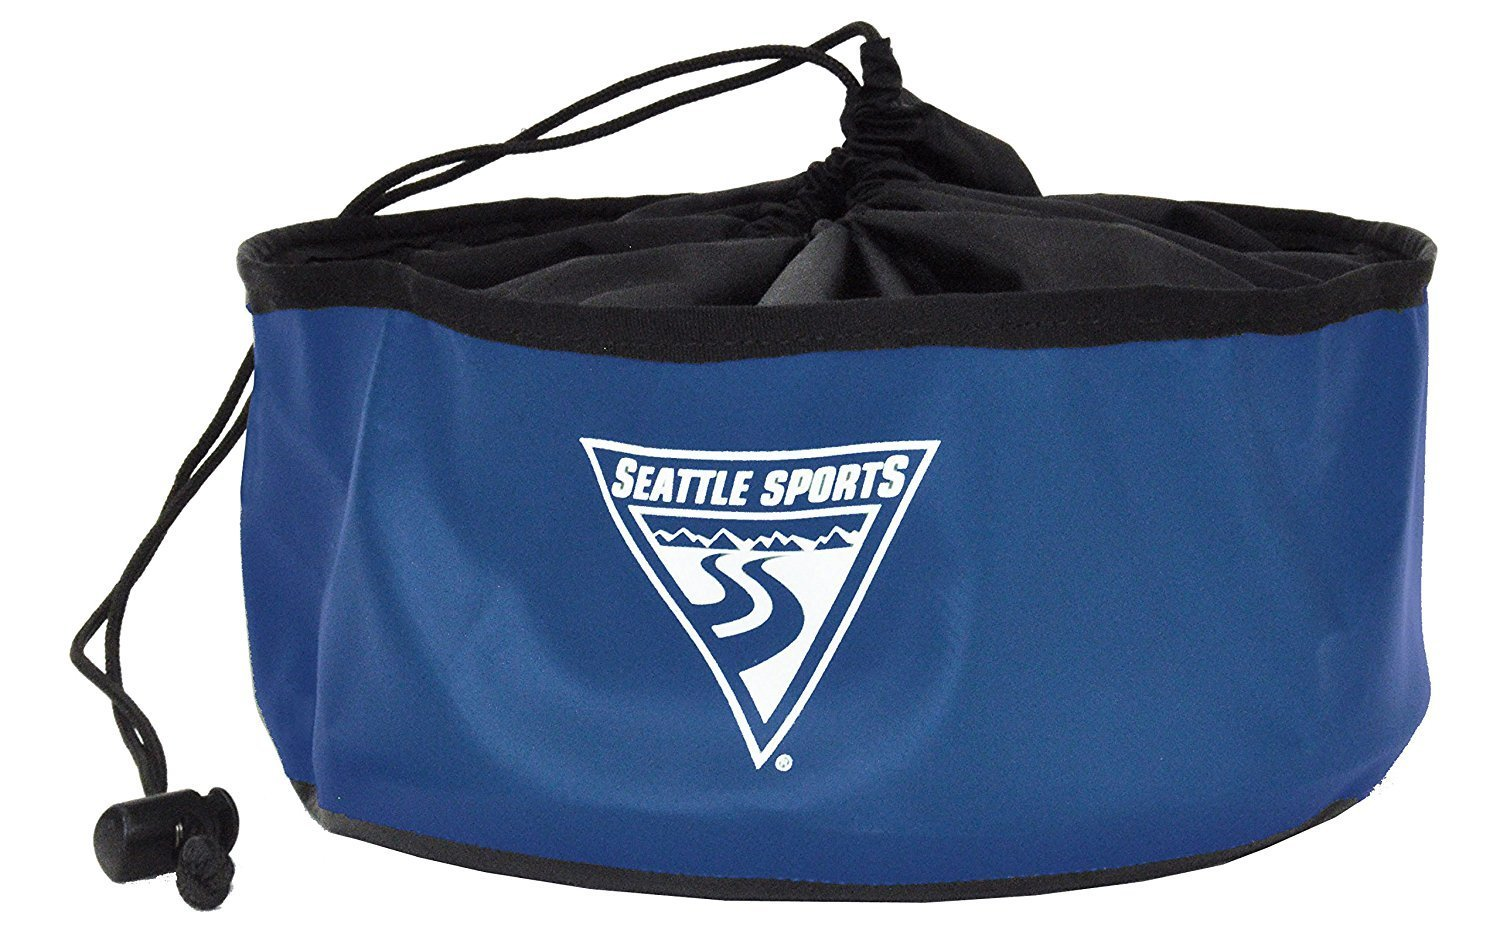 Seattle Sports Compact Outfitter Class Collapsible Bowl